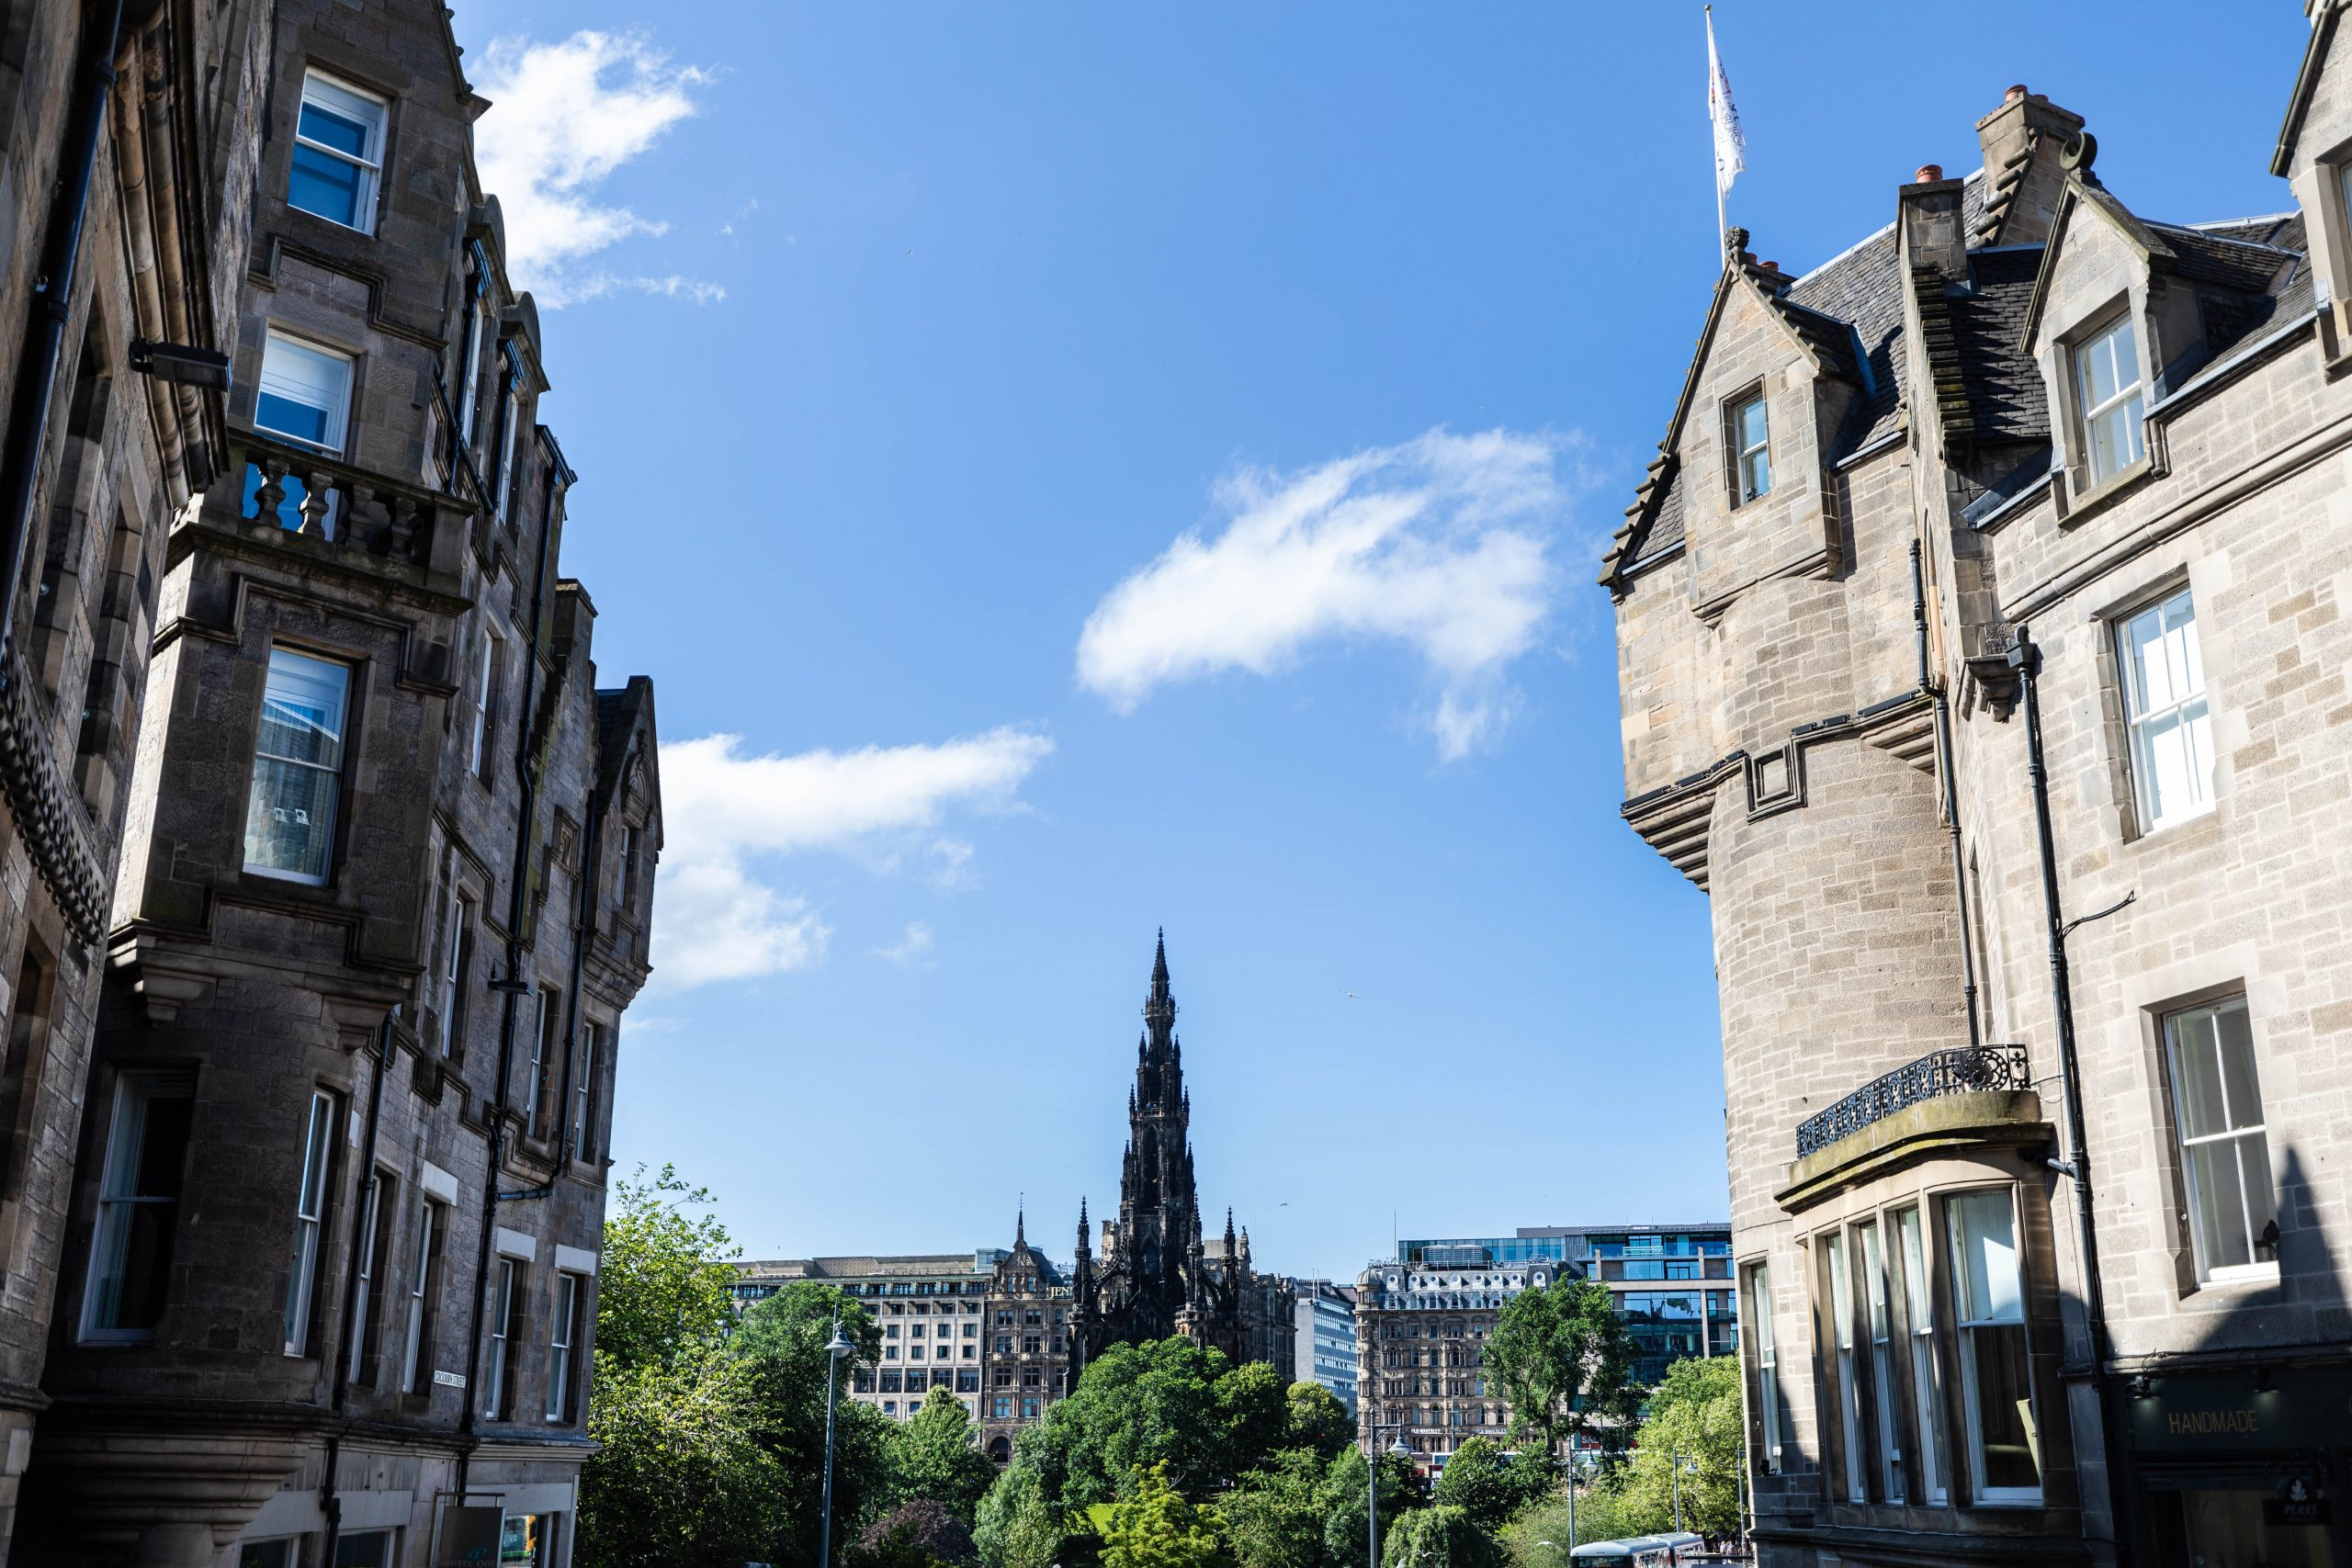 Scott Monument on the Hill Luxury Travel Guide Scotland by Annie Fairfax